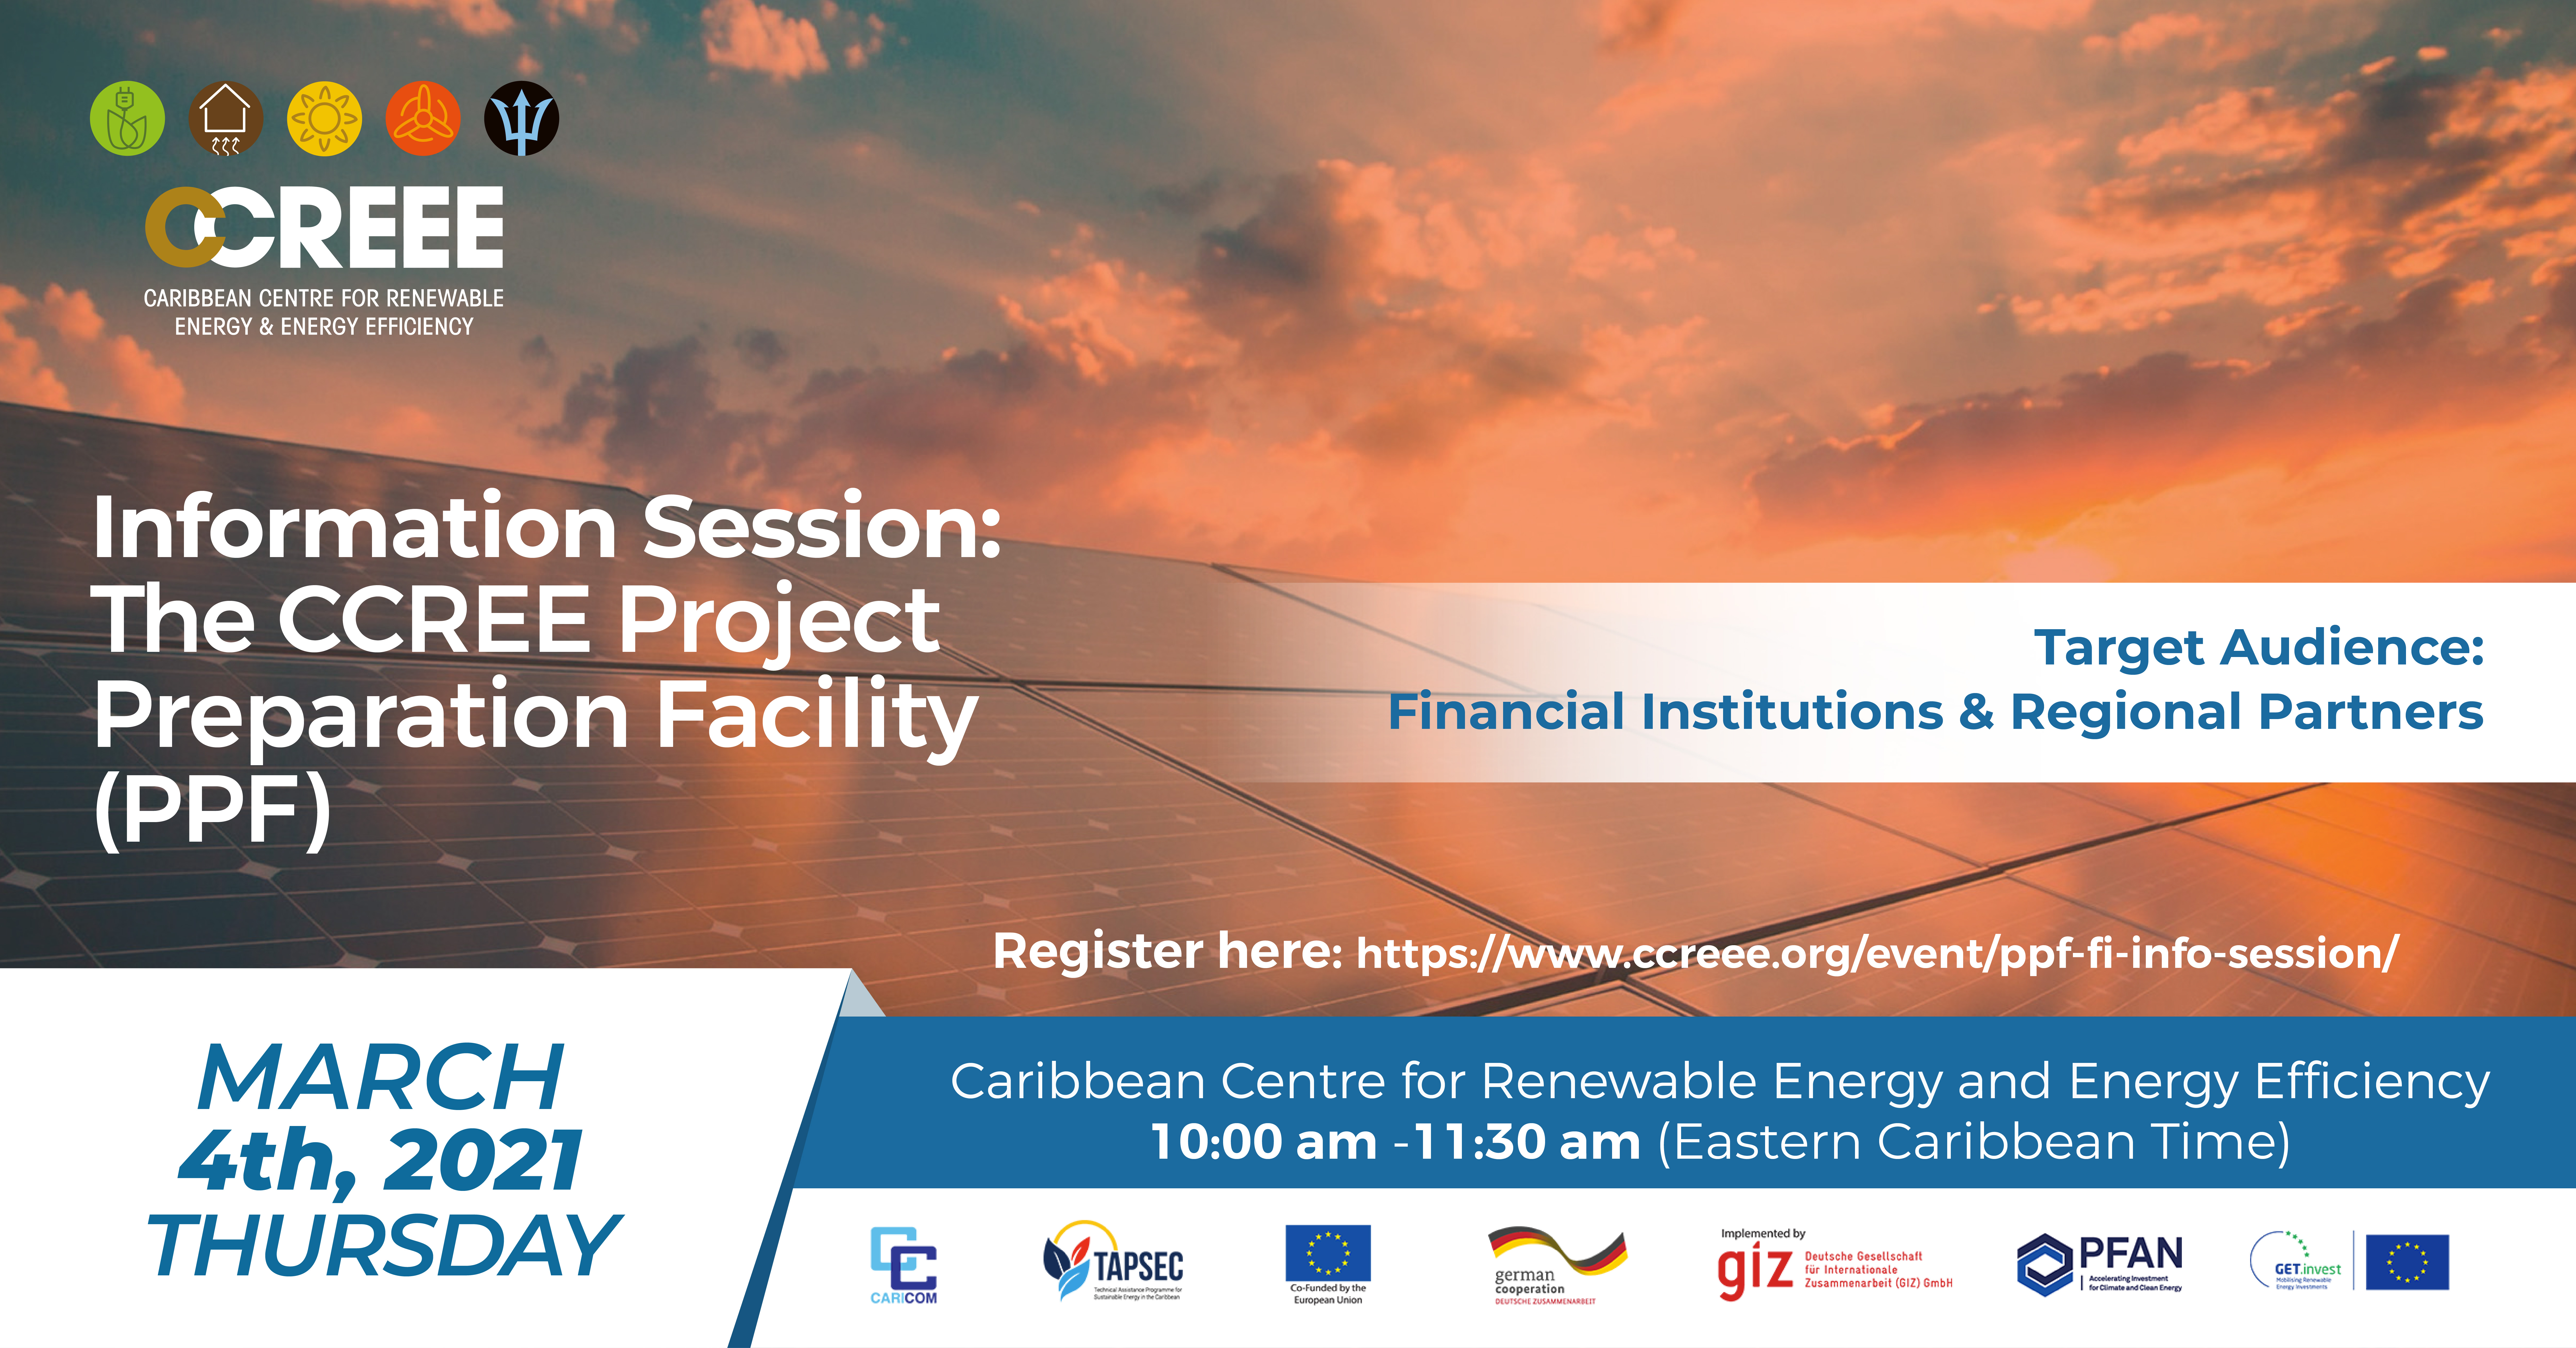 PPF Information Session: Financial Institutions & Regional Partners